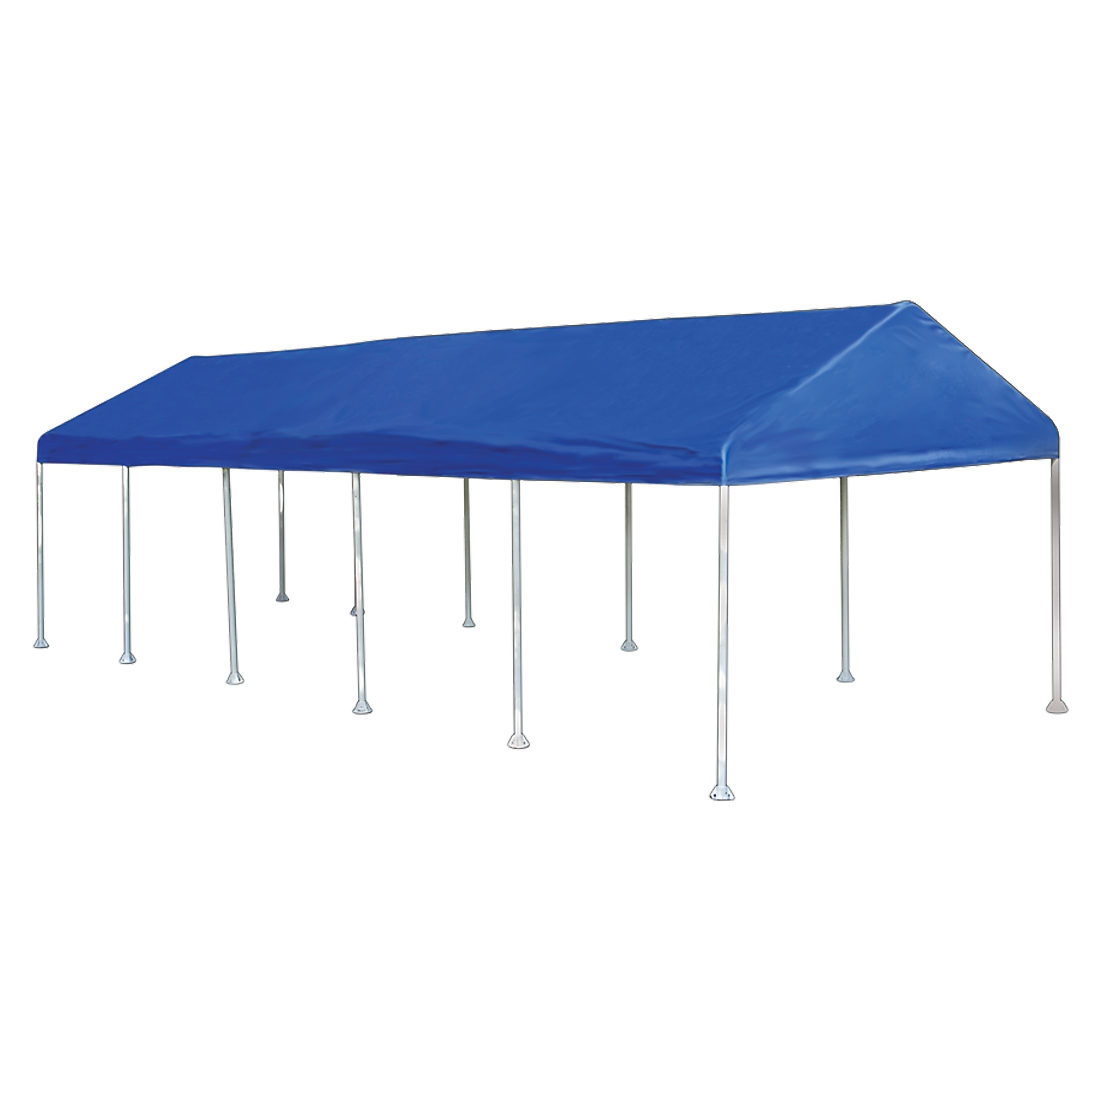 Decorative Canopy decorative canopy 12 x 30 ft. - on clearance